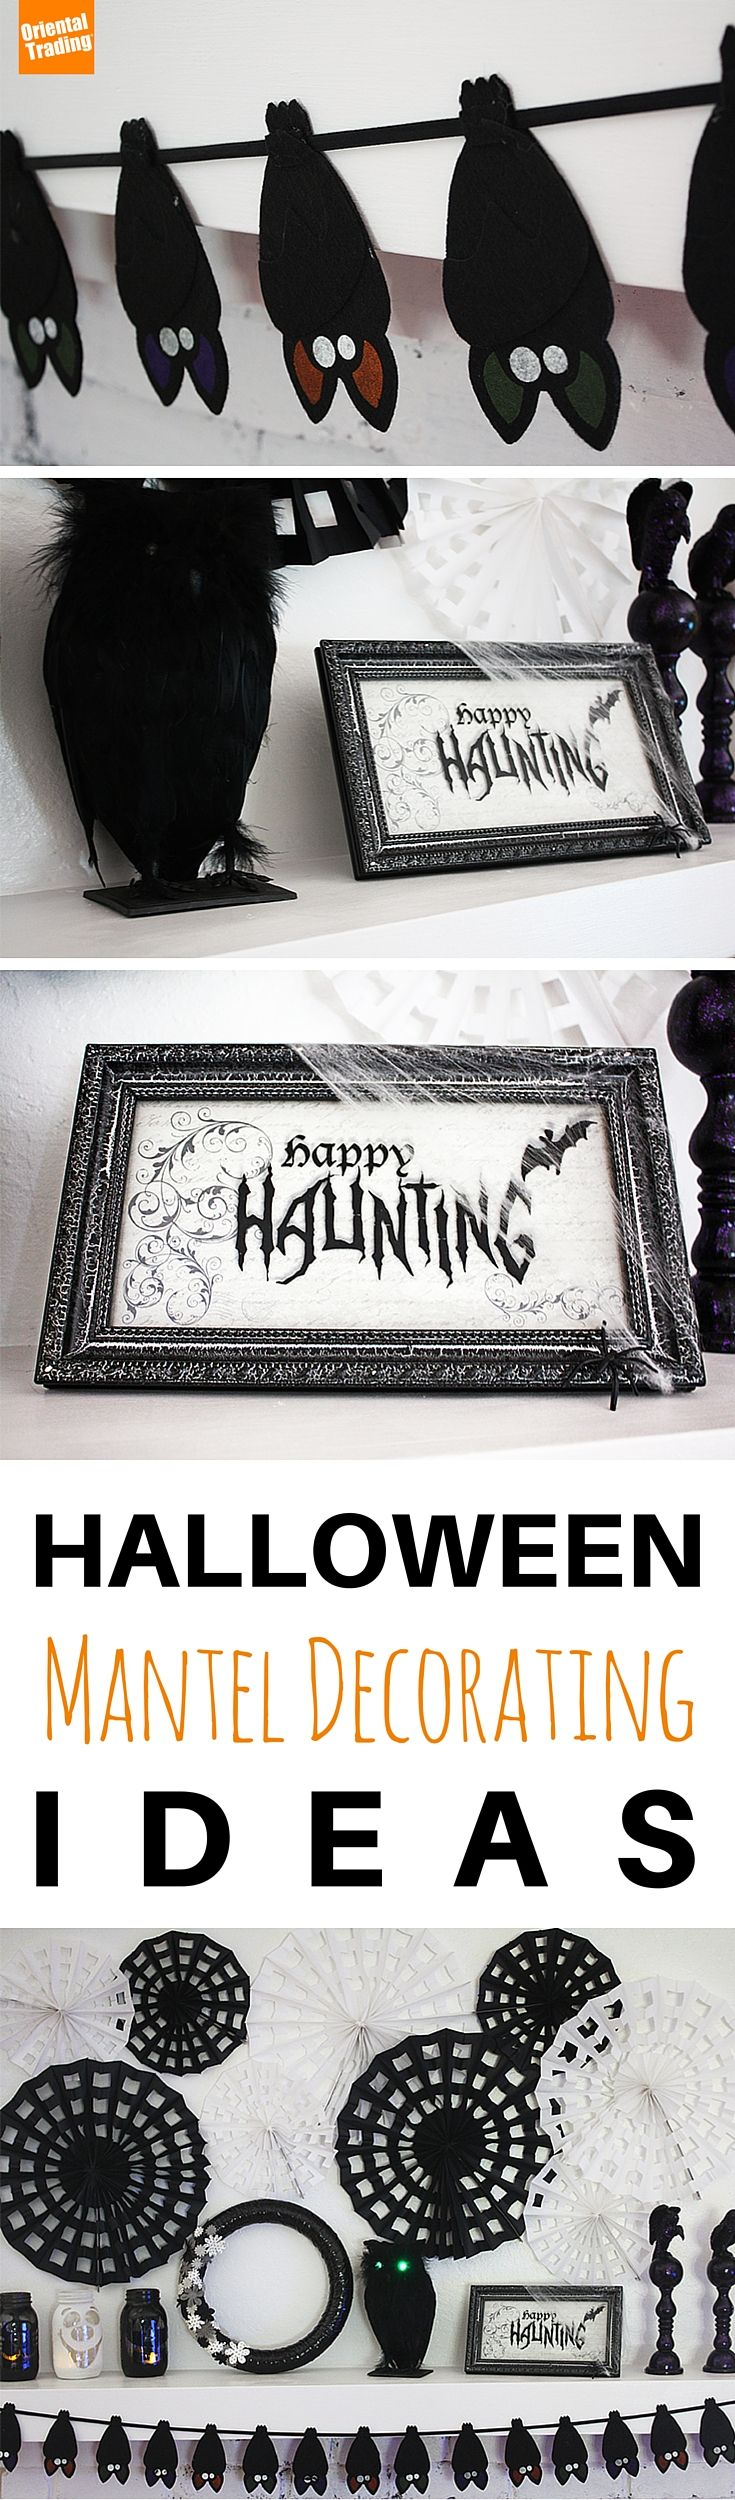 373 best images about Halloween Ideas on Pinterest